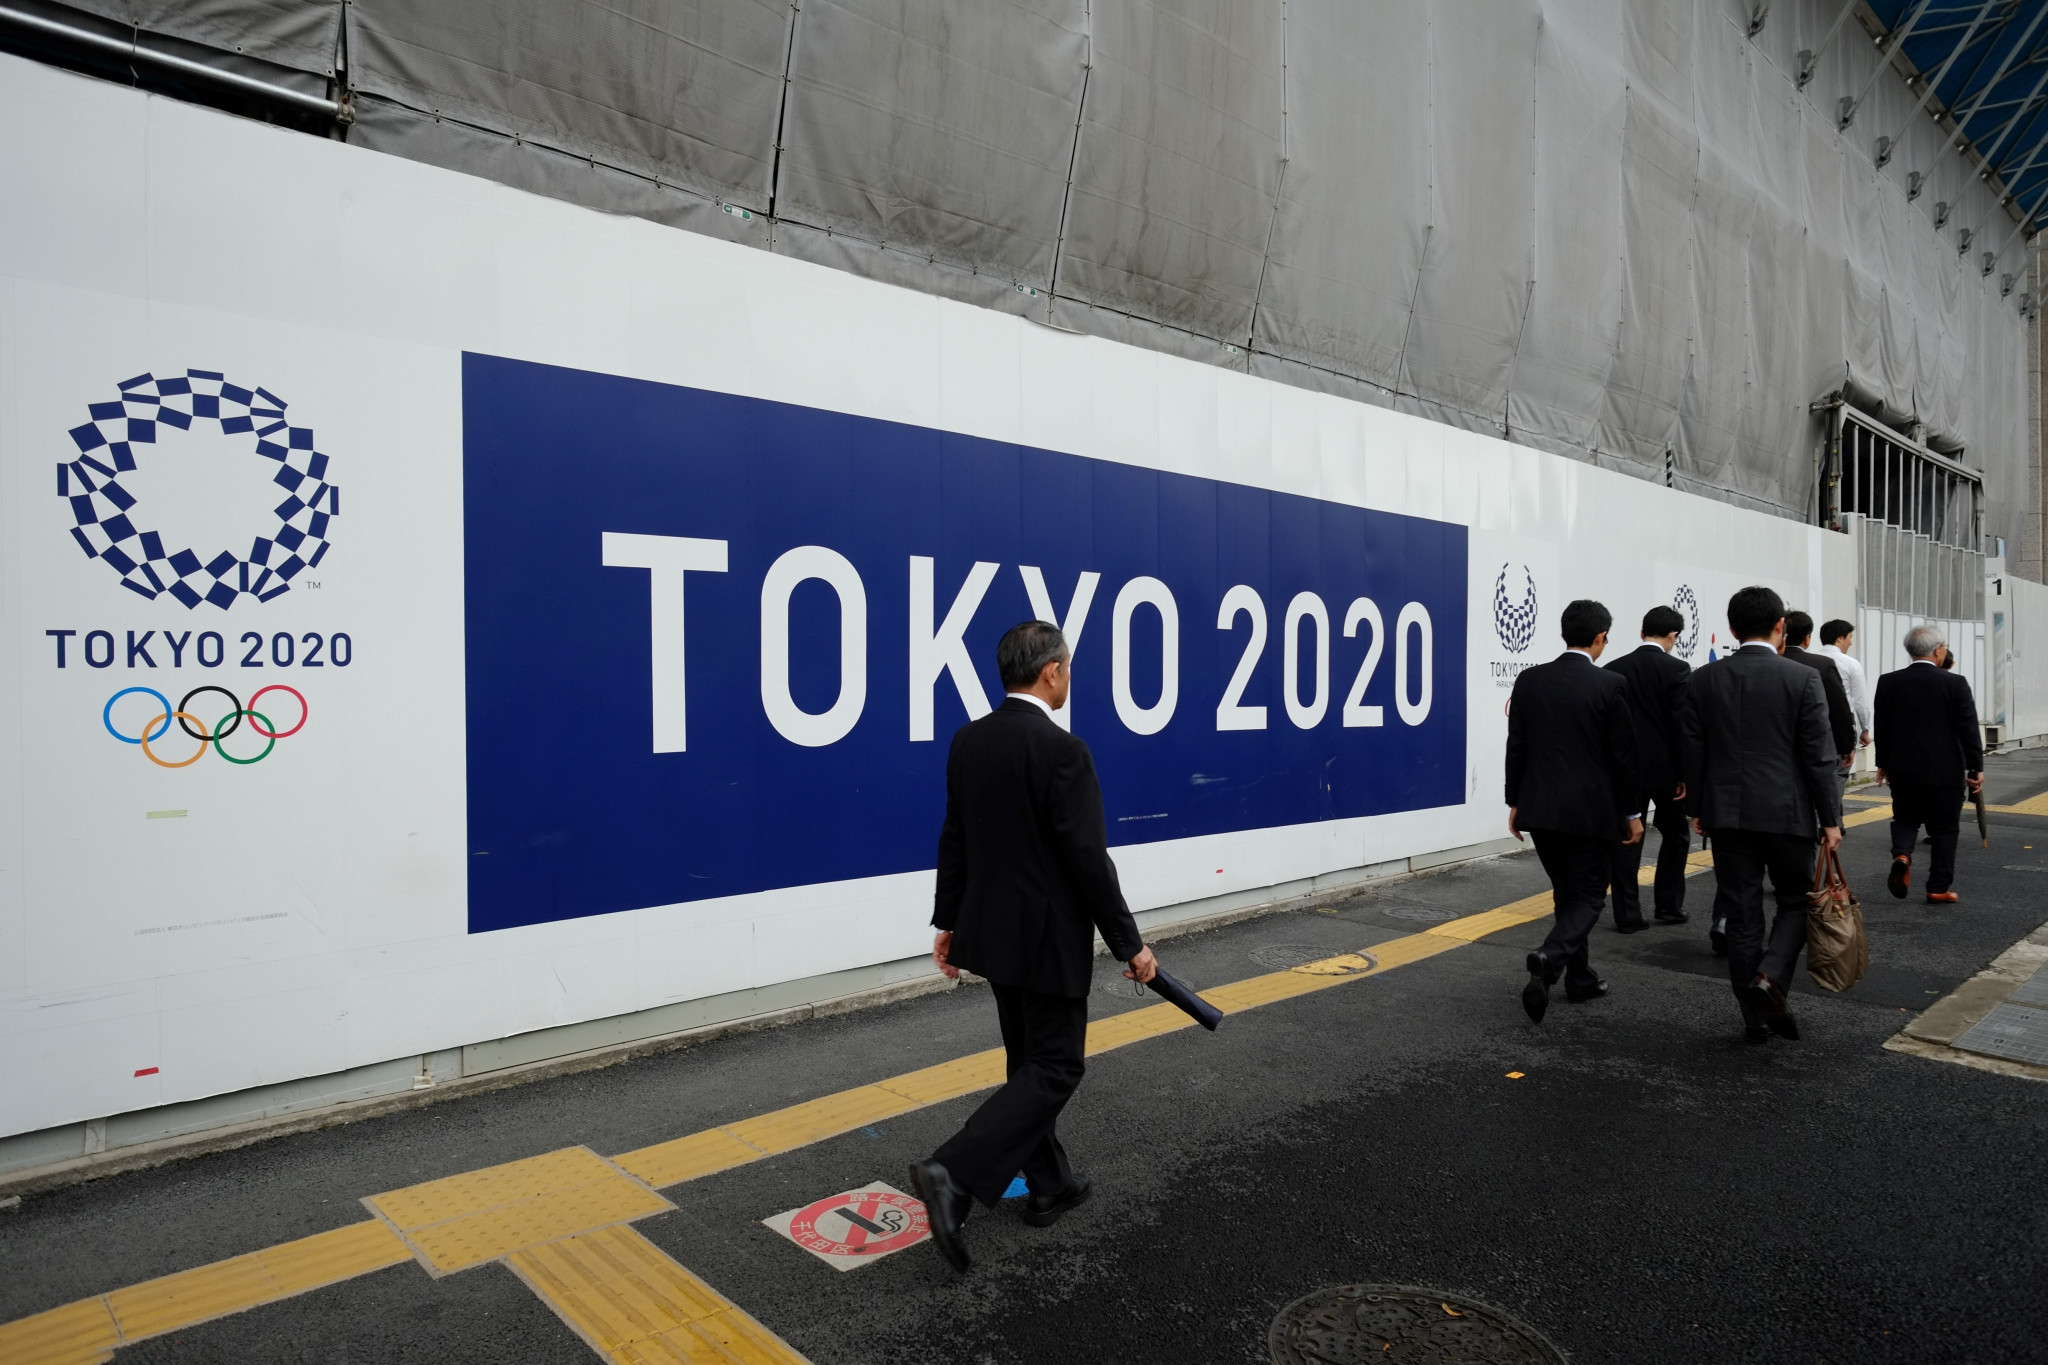 Toyota will provide thousands of vehicles at the Tokyo 2020 Olympics and Paralympics ©Getty Images